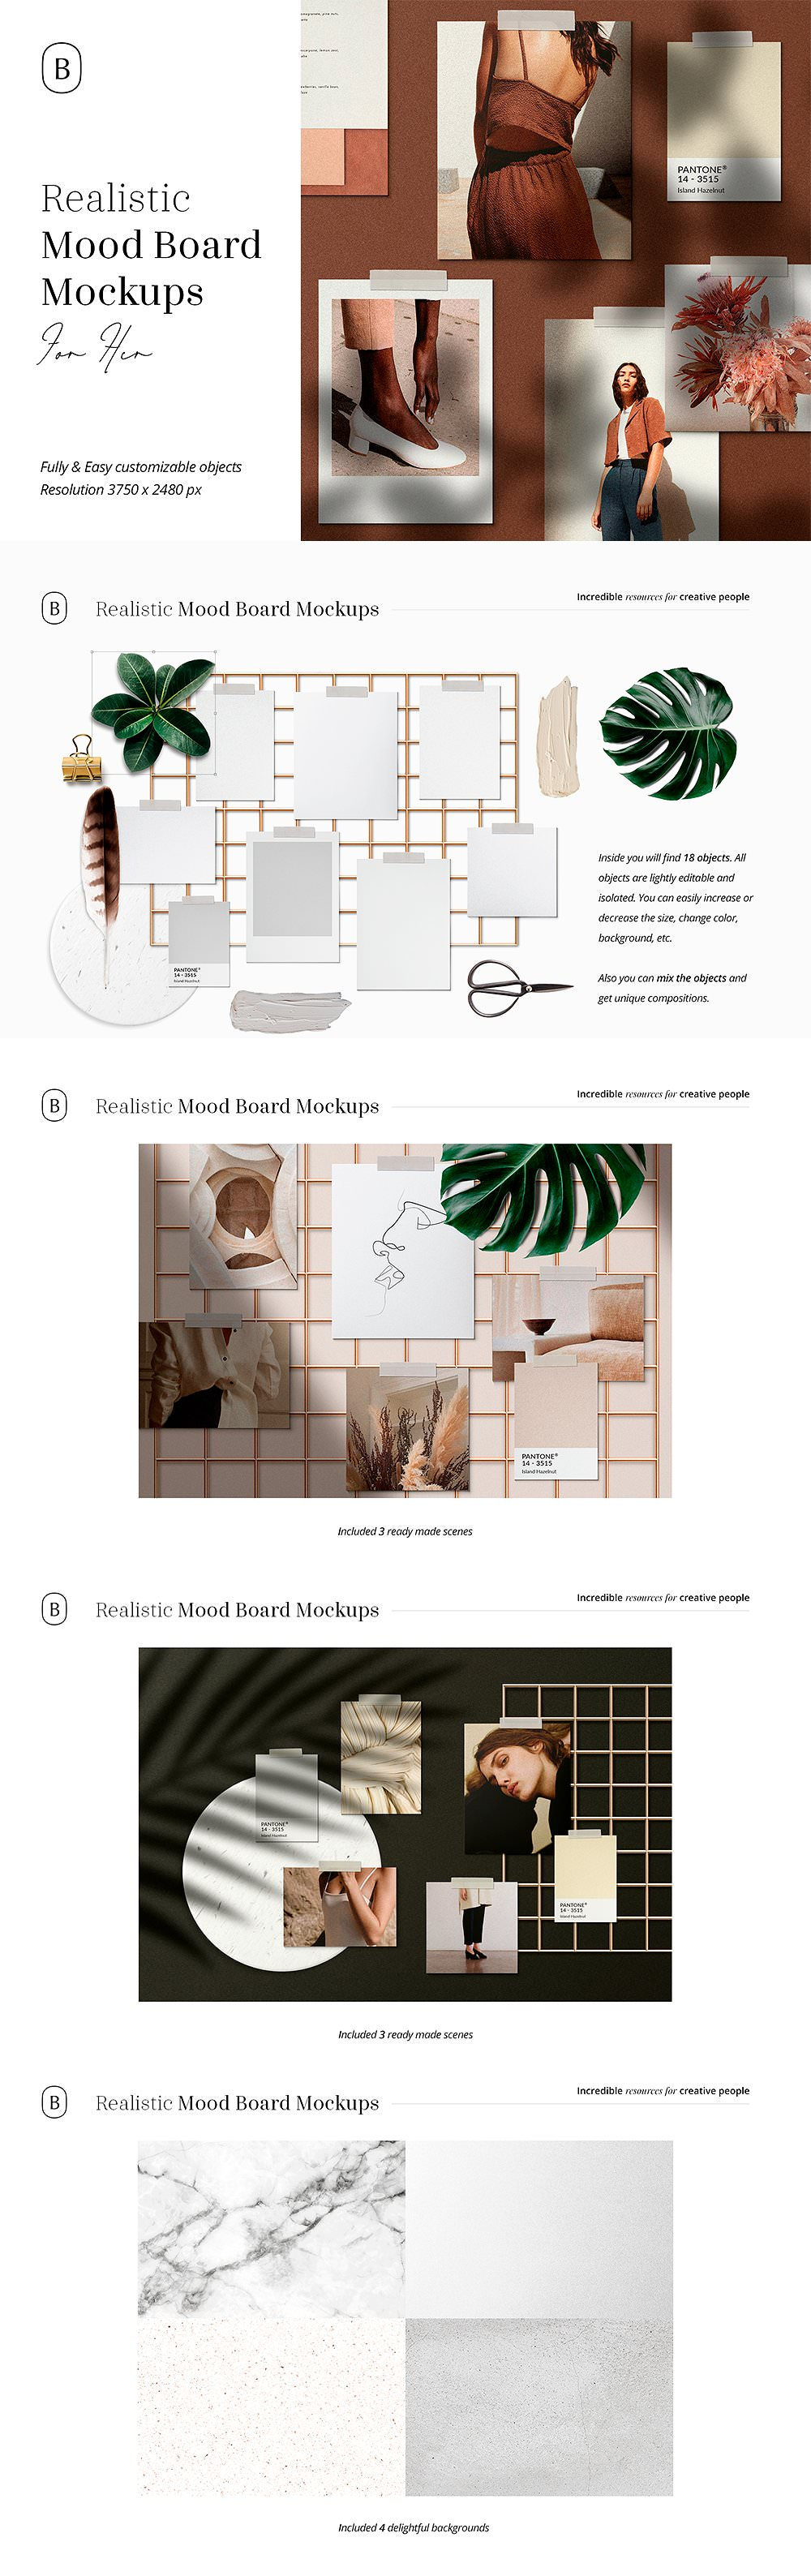 Realistic mood board mockup presentation.